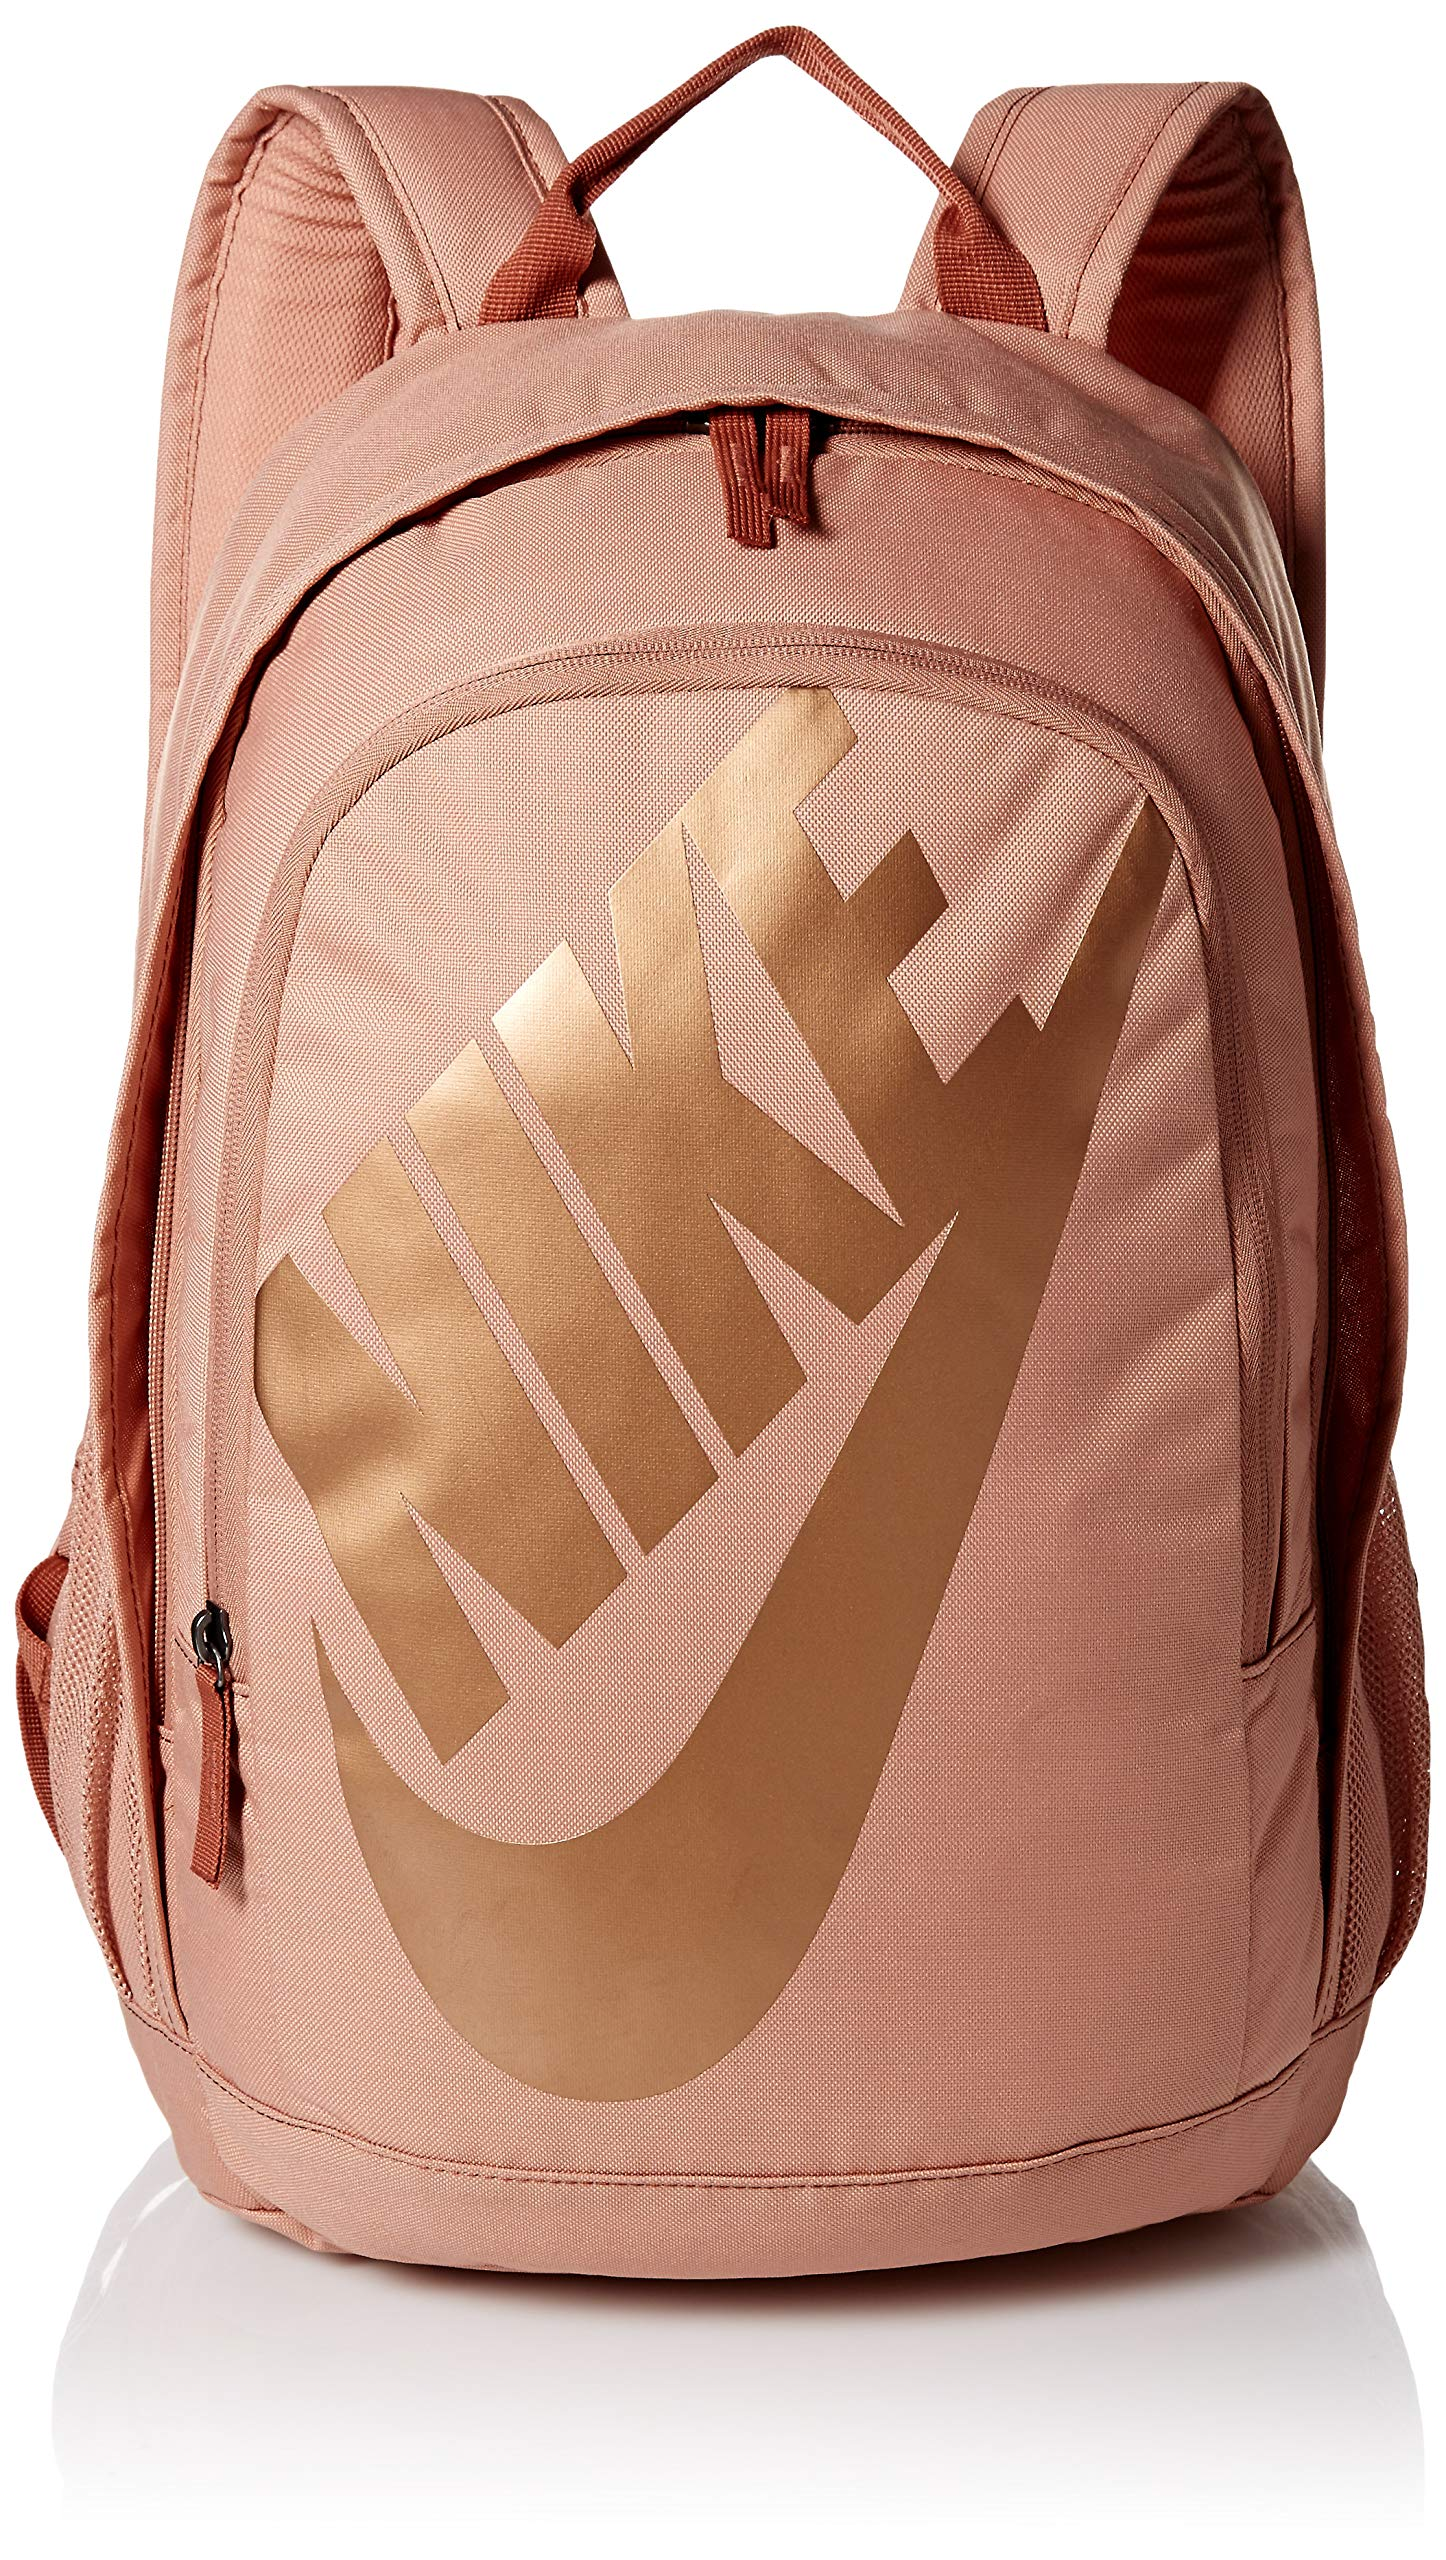 Nike Sportswear Hayward Futura Backpack for Men, Large Backpack with Durable Polyester Shell and Padded Shoulder Straps, Rose Gold/Dusty Peach/Metallic Red by Nike